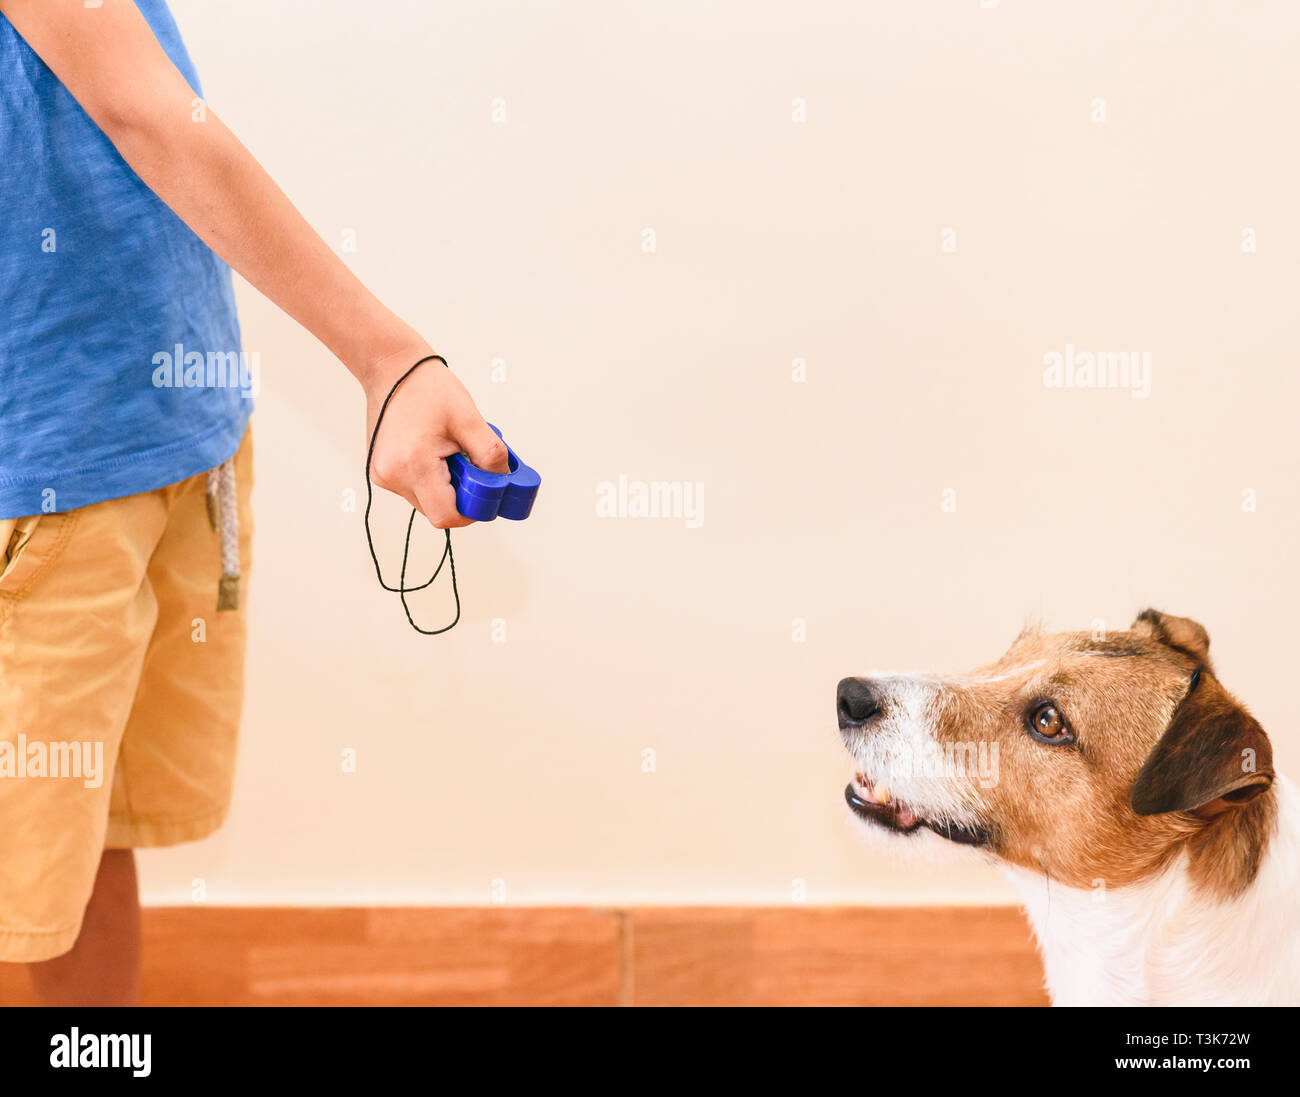 Concept of positive reinforcement dog training with kid using clicker for obedience exercise - Stock Image